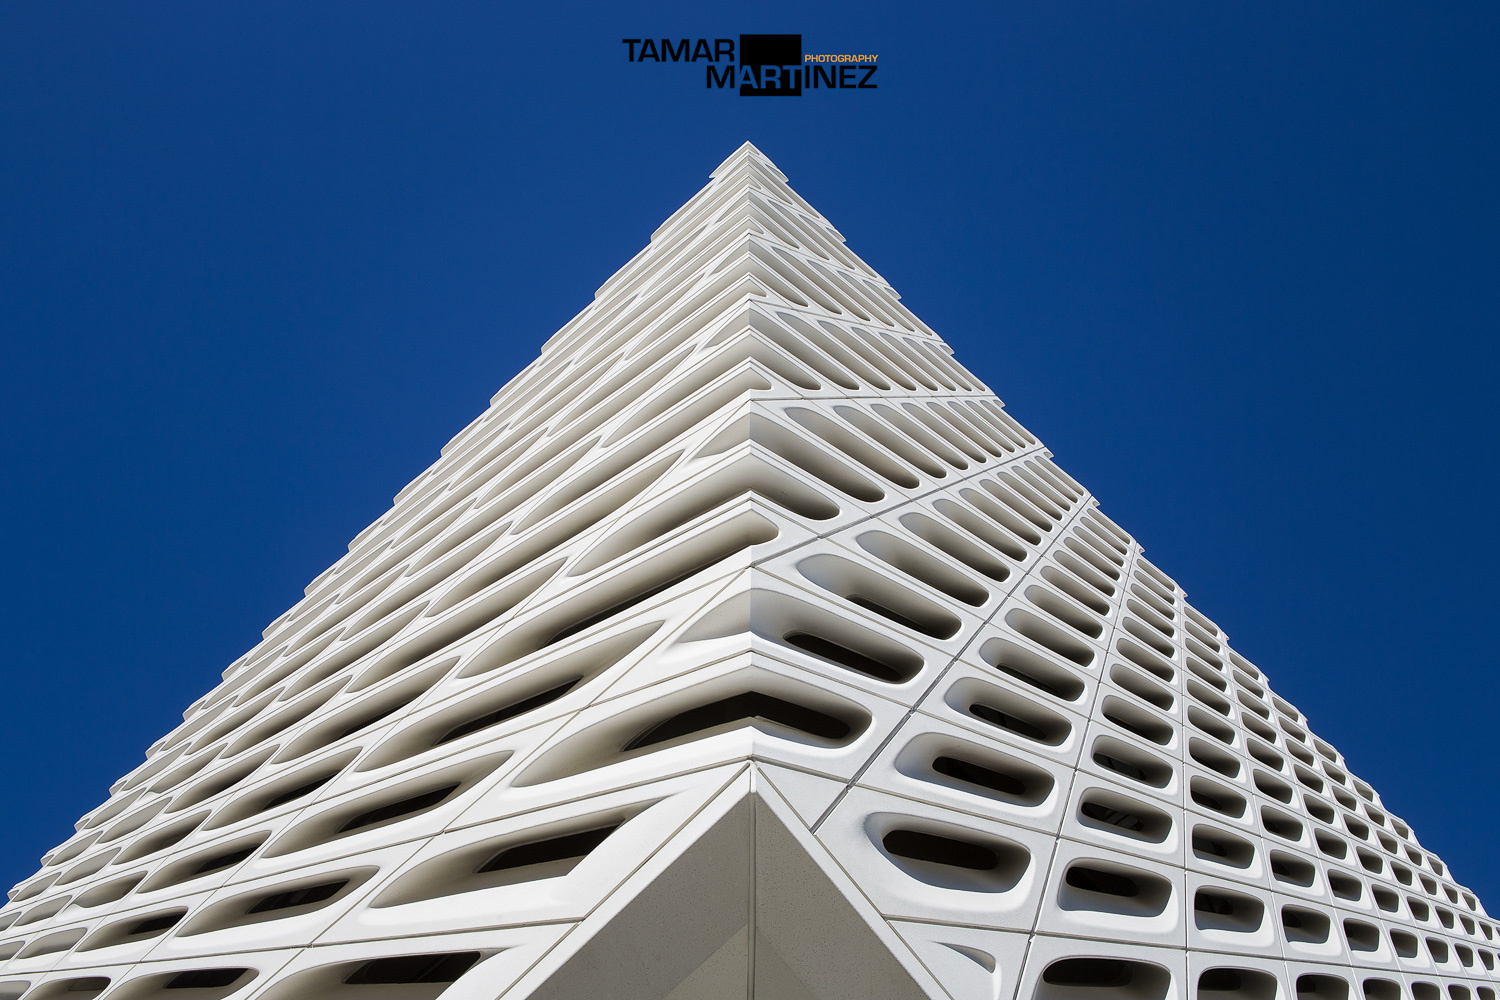 The broad by Tamar Martinez